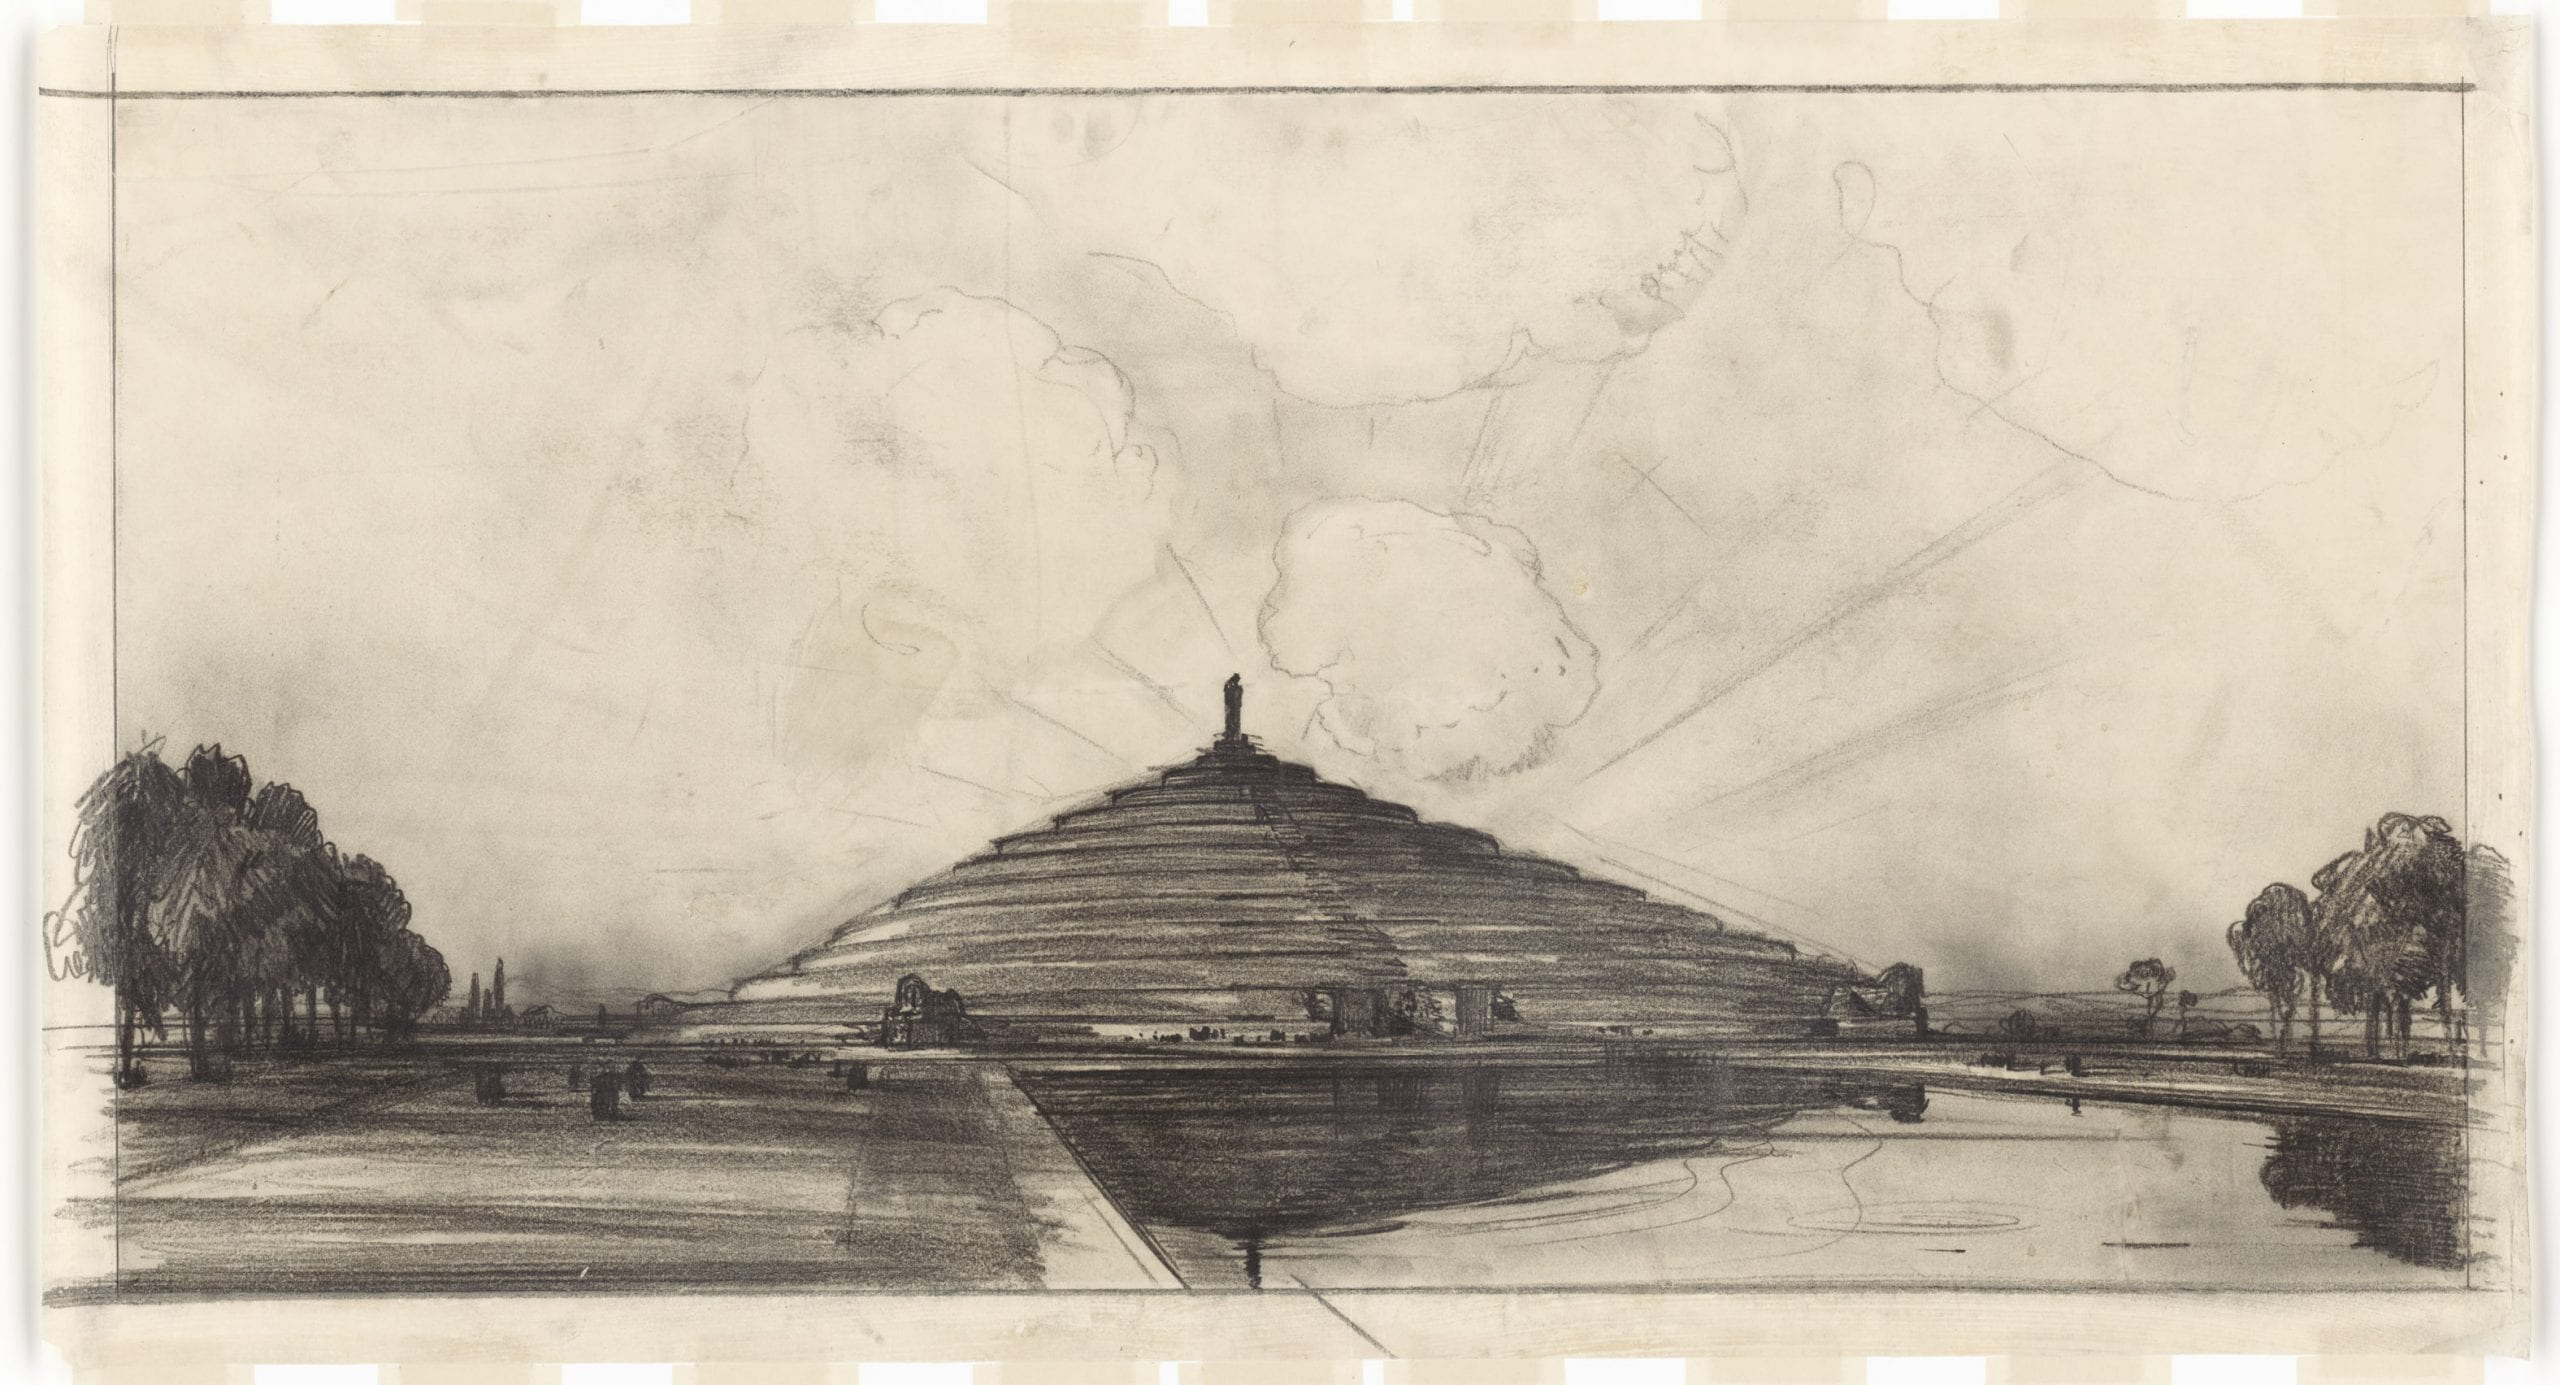 John Russell Pope's Competition Proposal for a Circular Ziggurat Style Monument to Abraham Lincoln, 1912